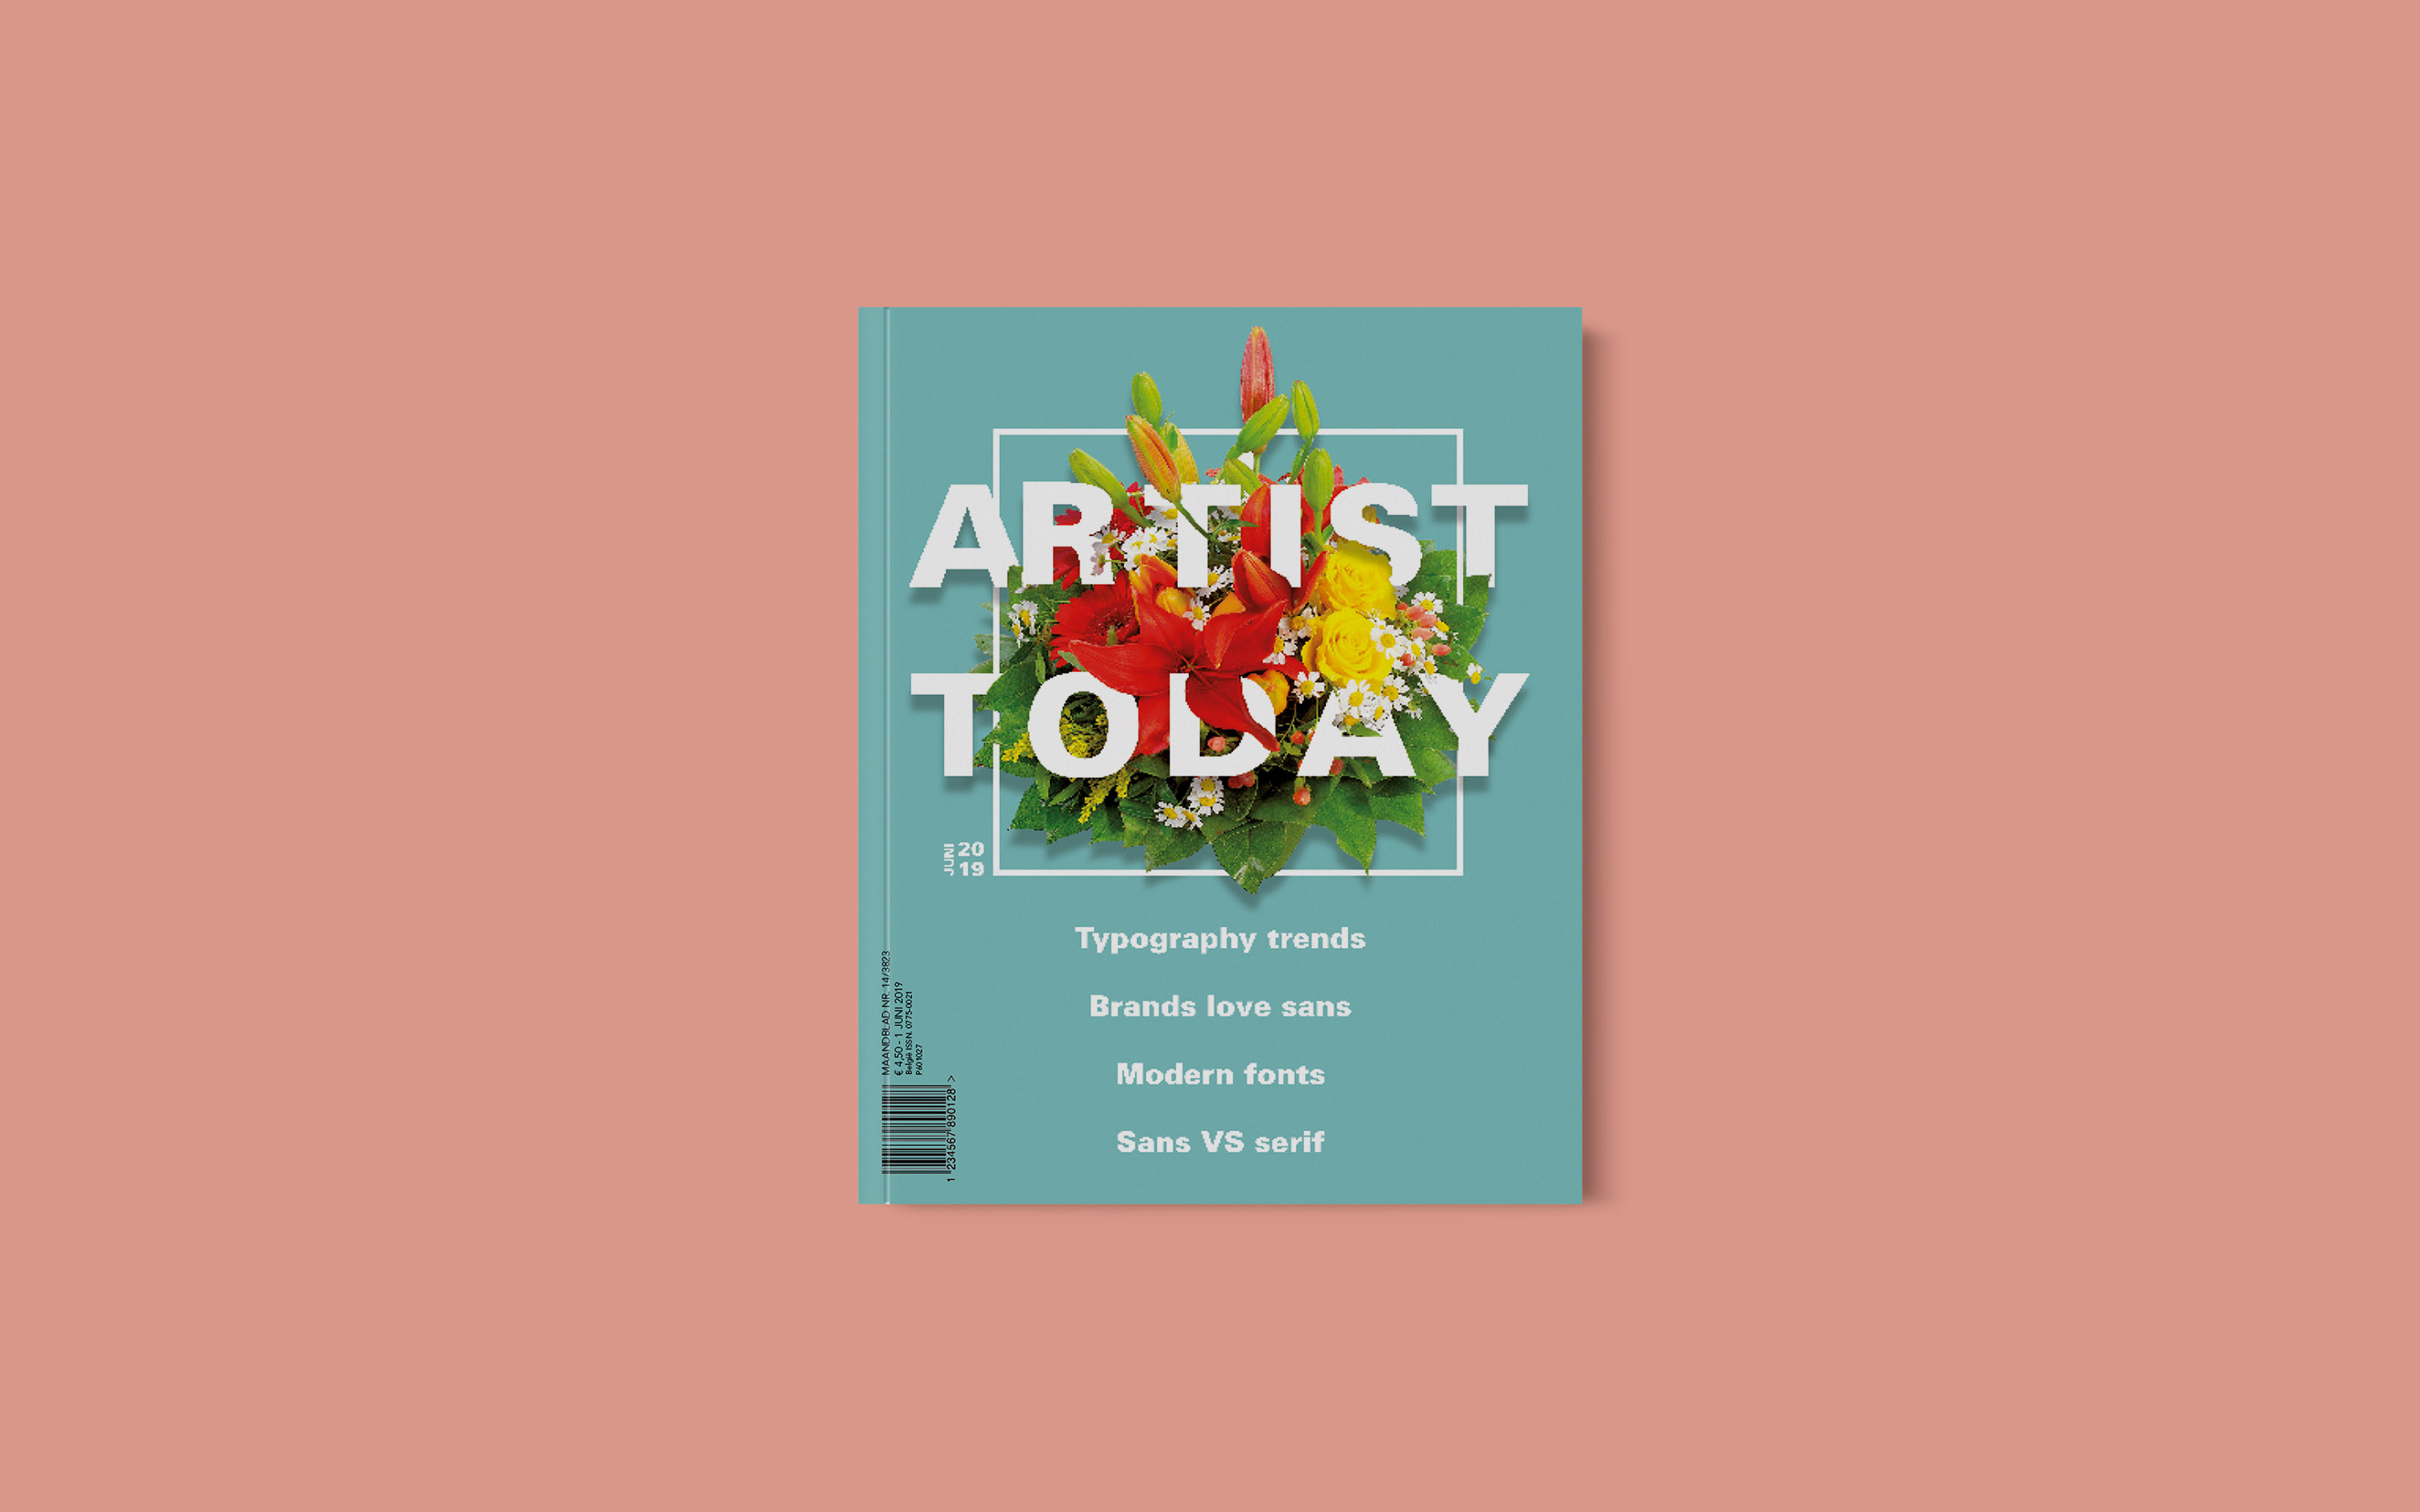 Artist today